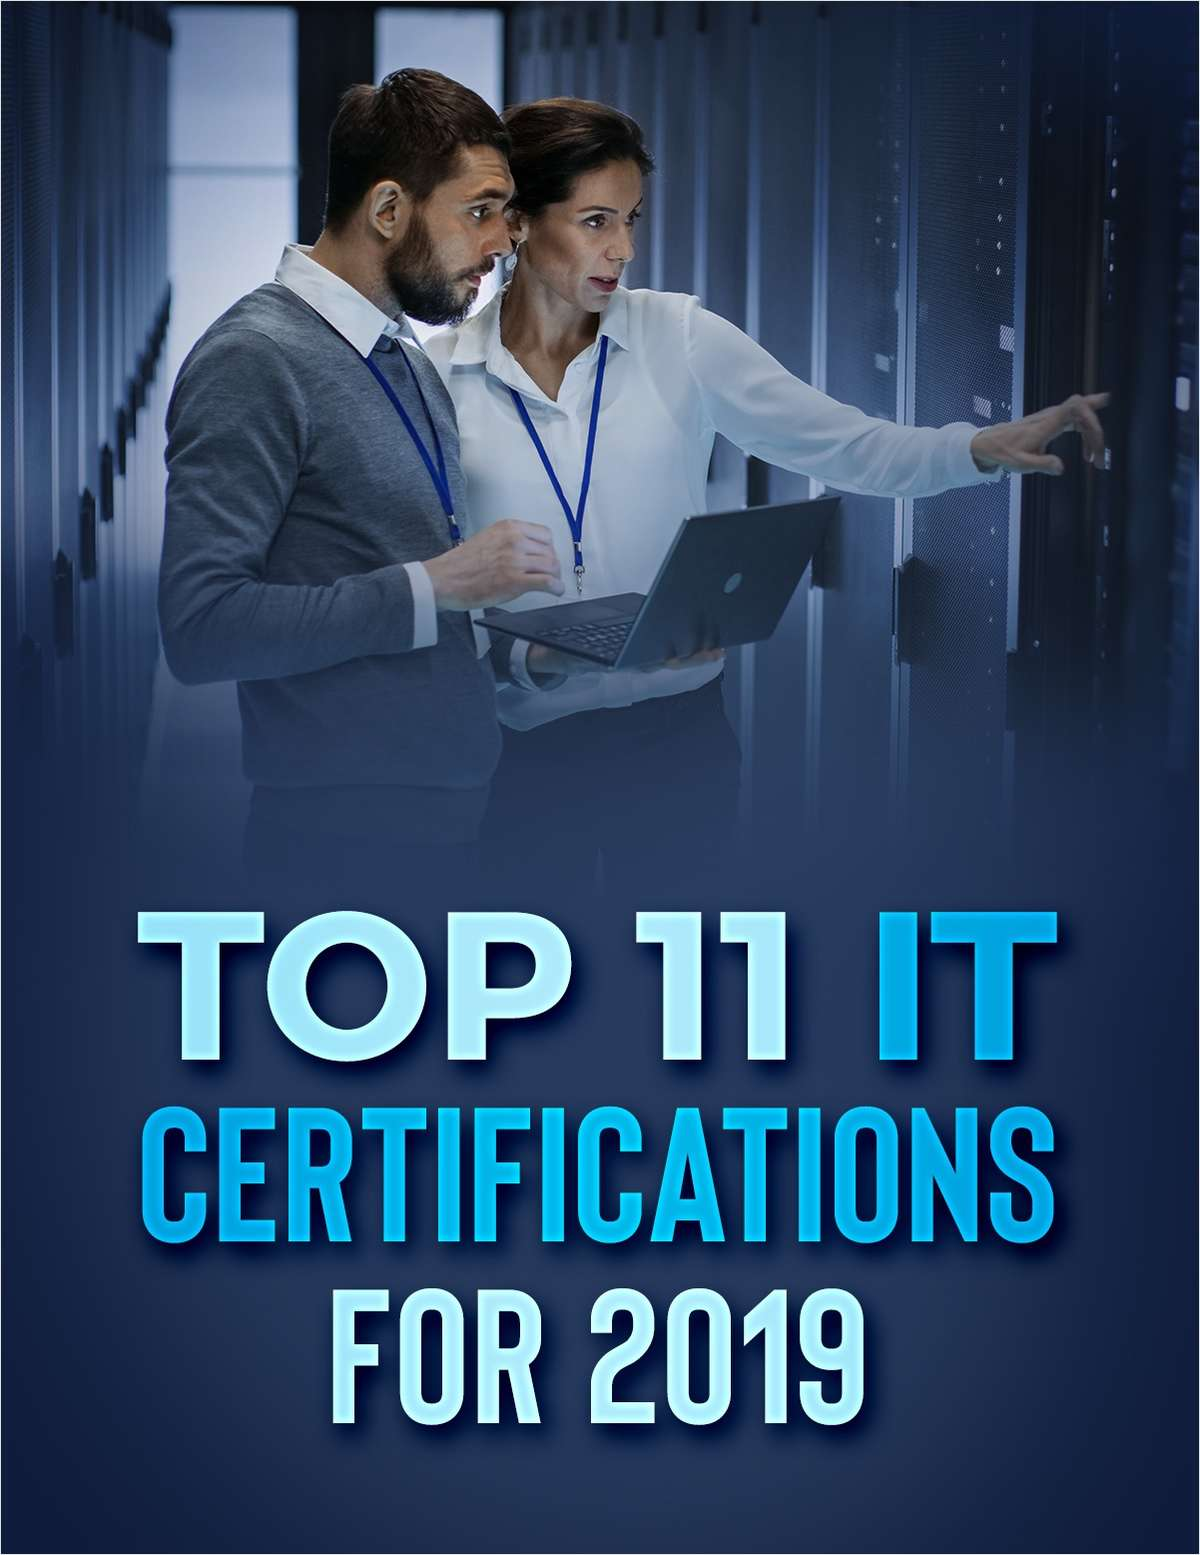 Top 11 IT Certifications for 2019